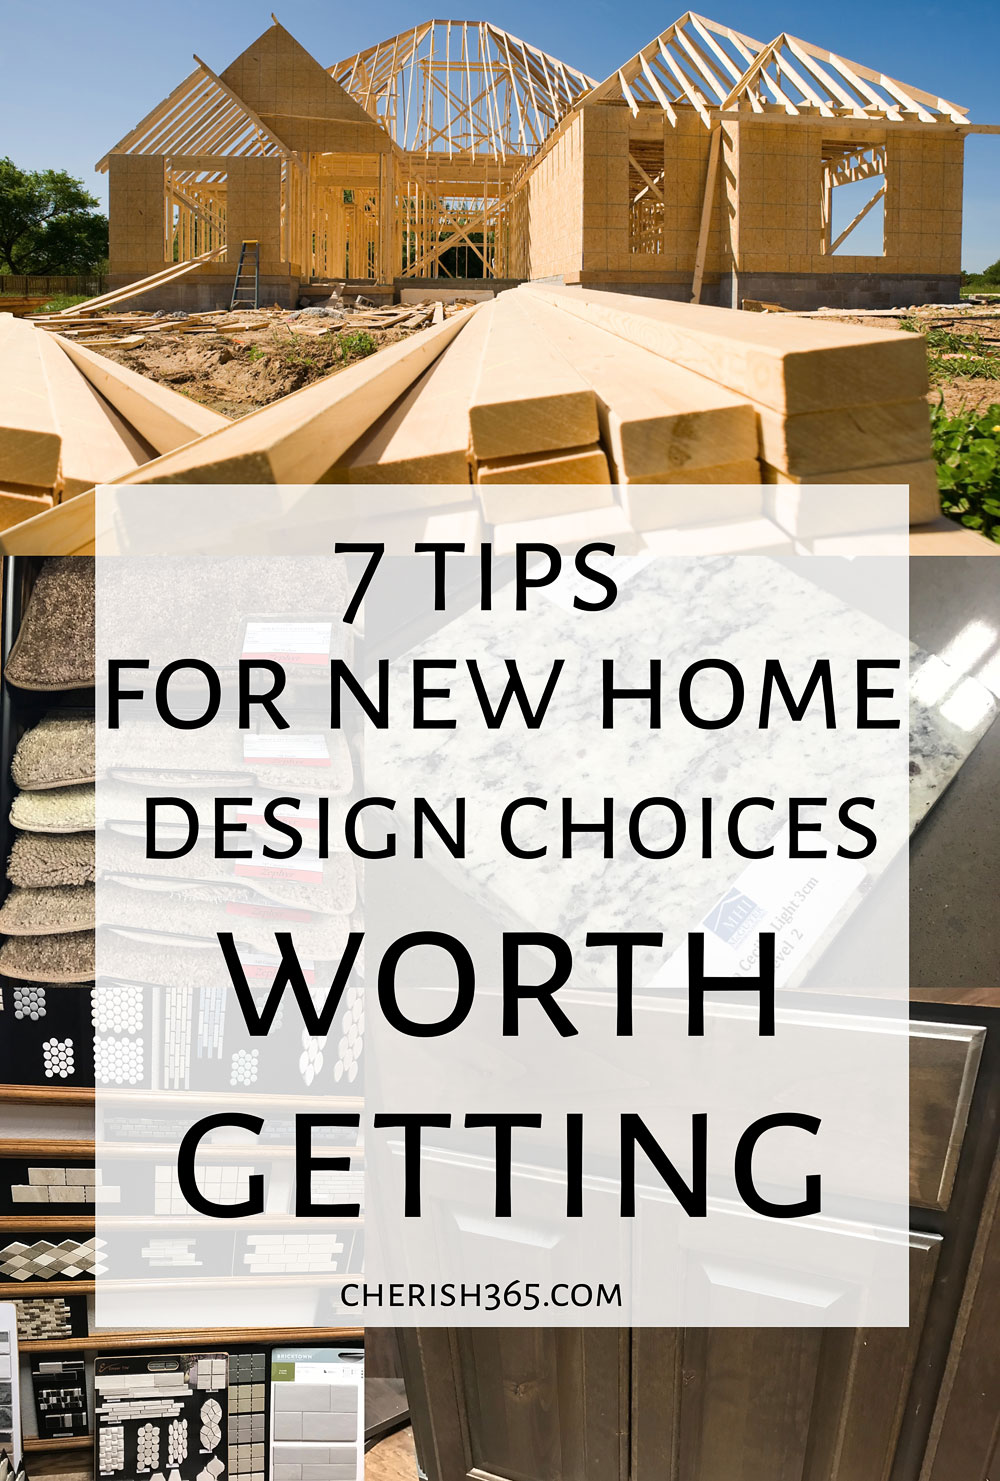 Builder upgrades worth getting. 7 Tips for new home design center choices